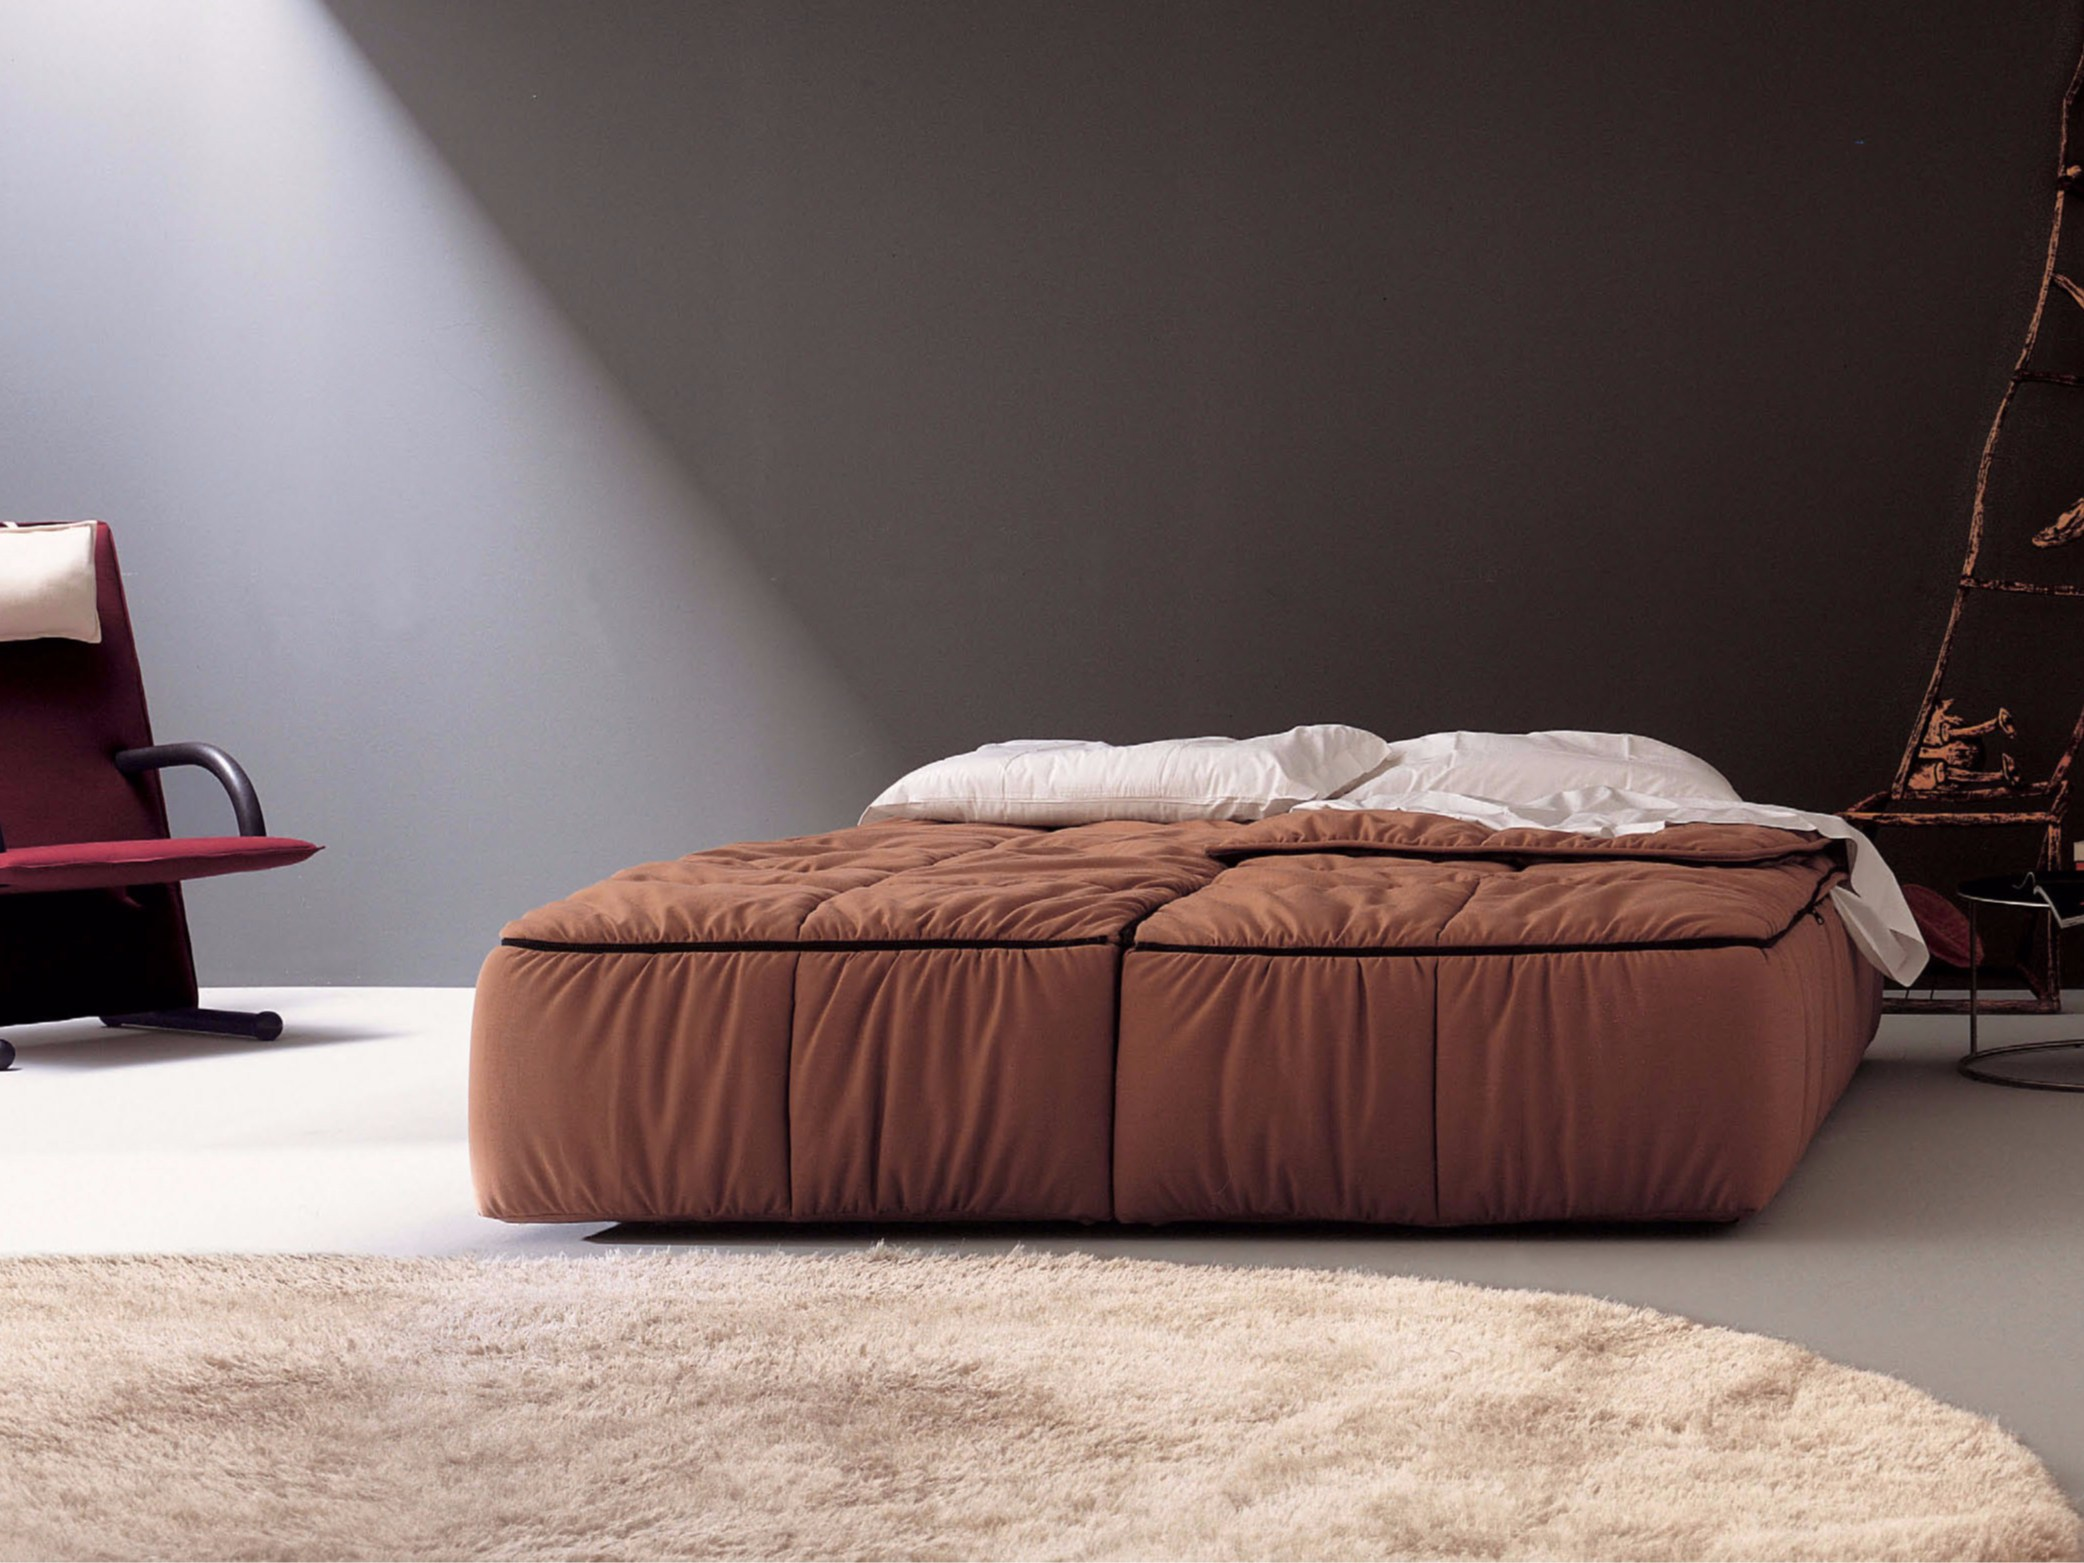 Letto Zip Bedden : Letto zip bed for sale. free fold away bed foldaway bed frame buy